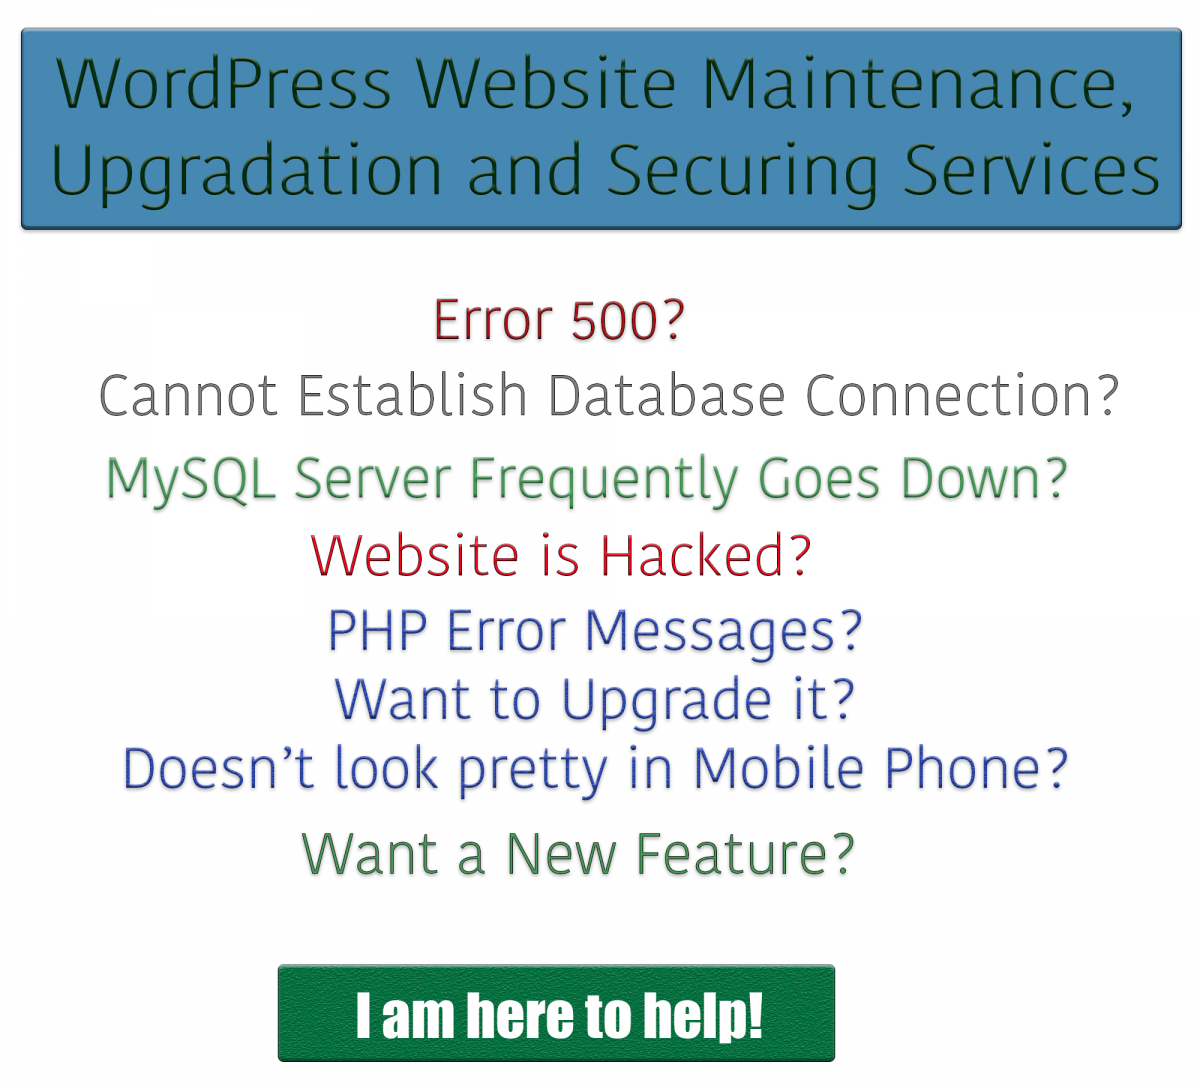 WordPress website maintenance, upgradation and securing